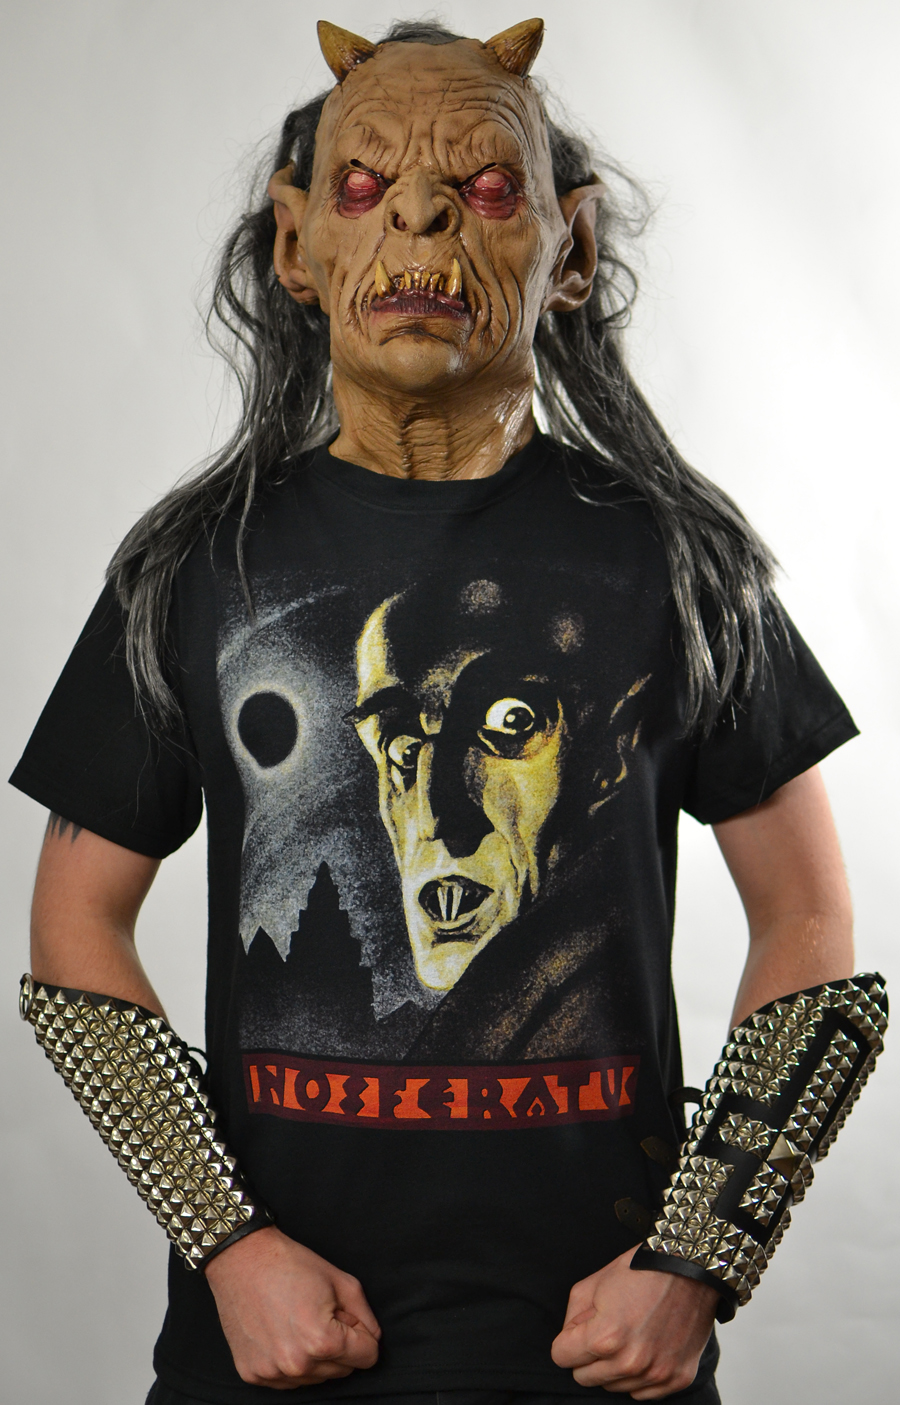 HORROR MOVIE - Nosferatu 1922 (Short Sleeve)